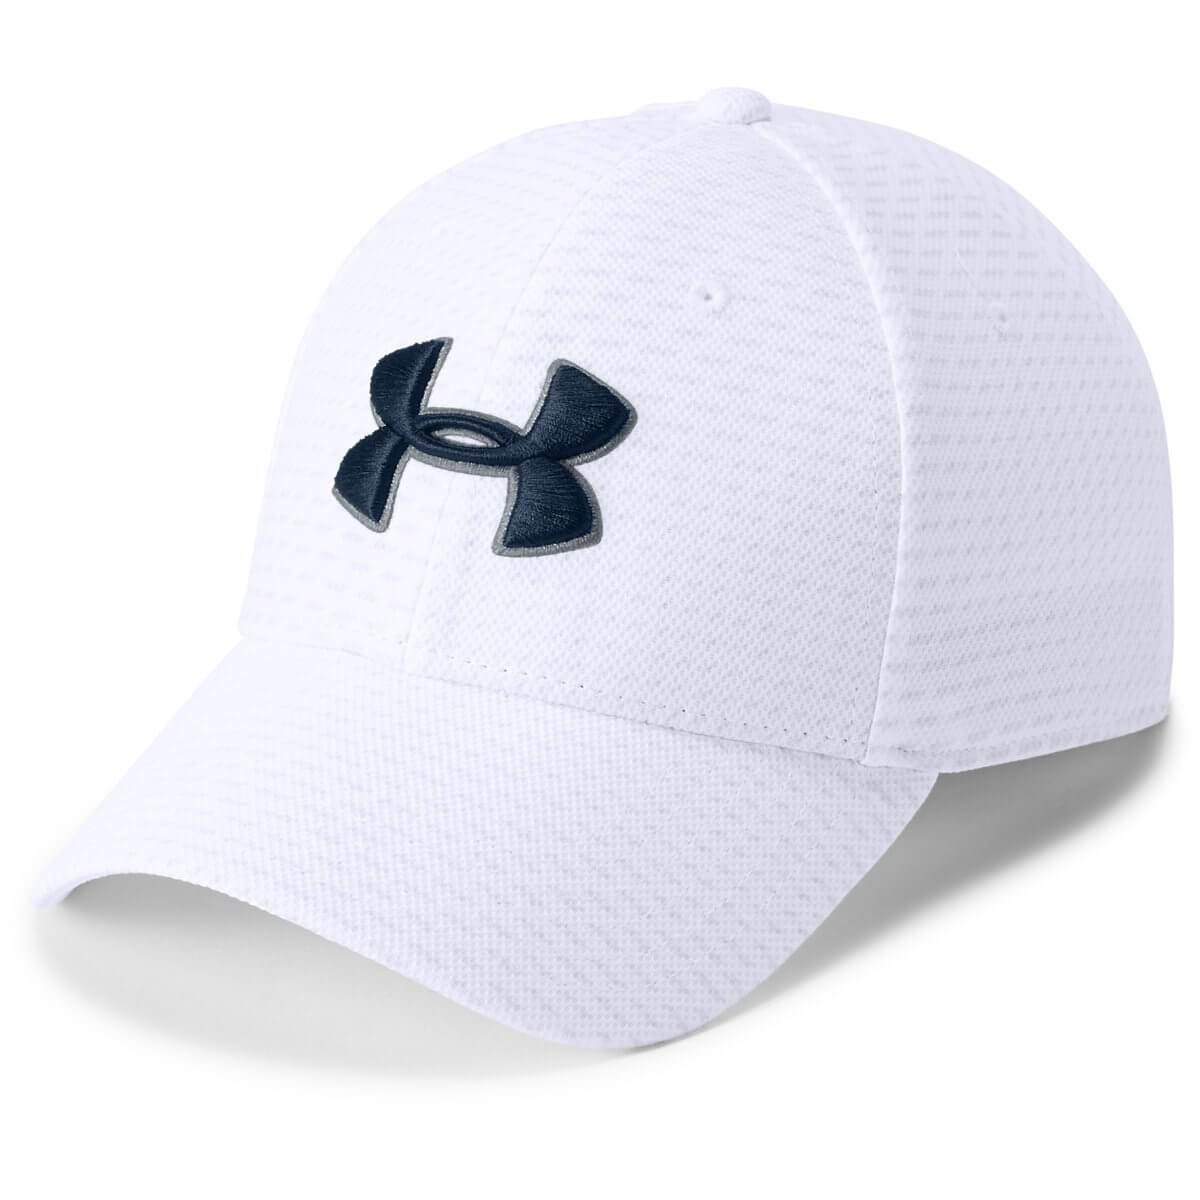 Under Armour Šiltovka Men's Printed Blitzing 3.0 White ML